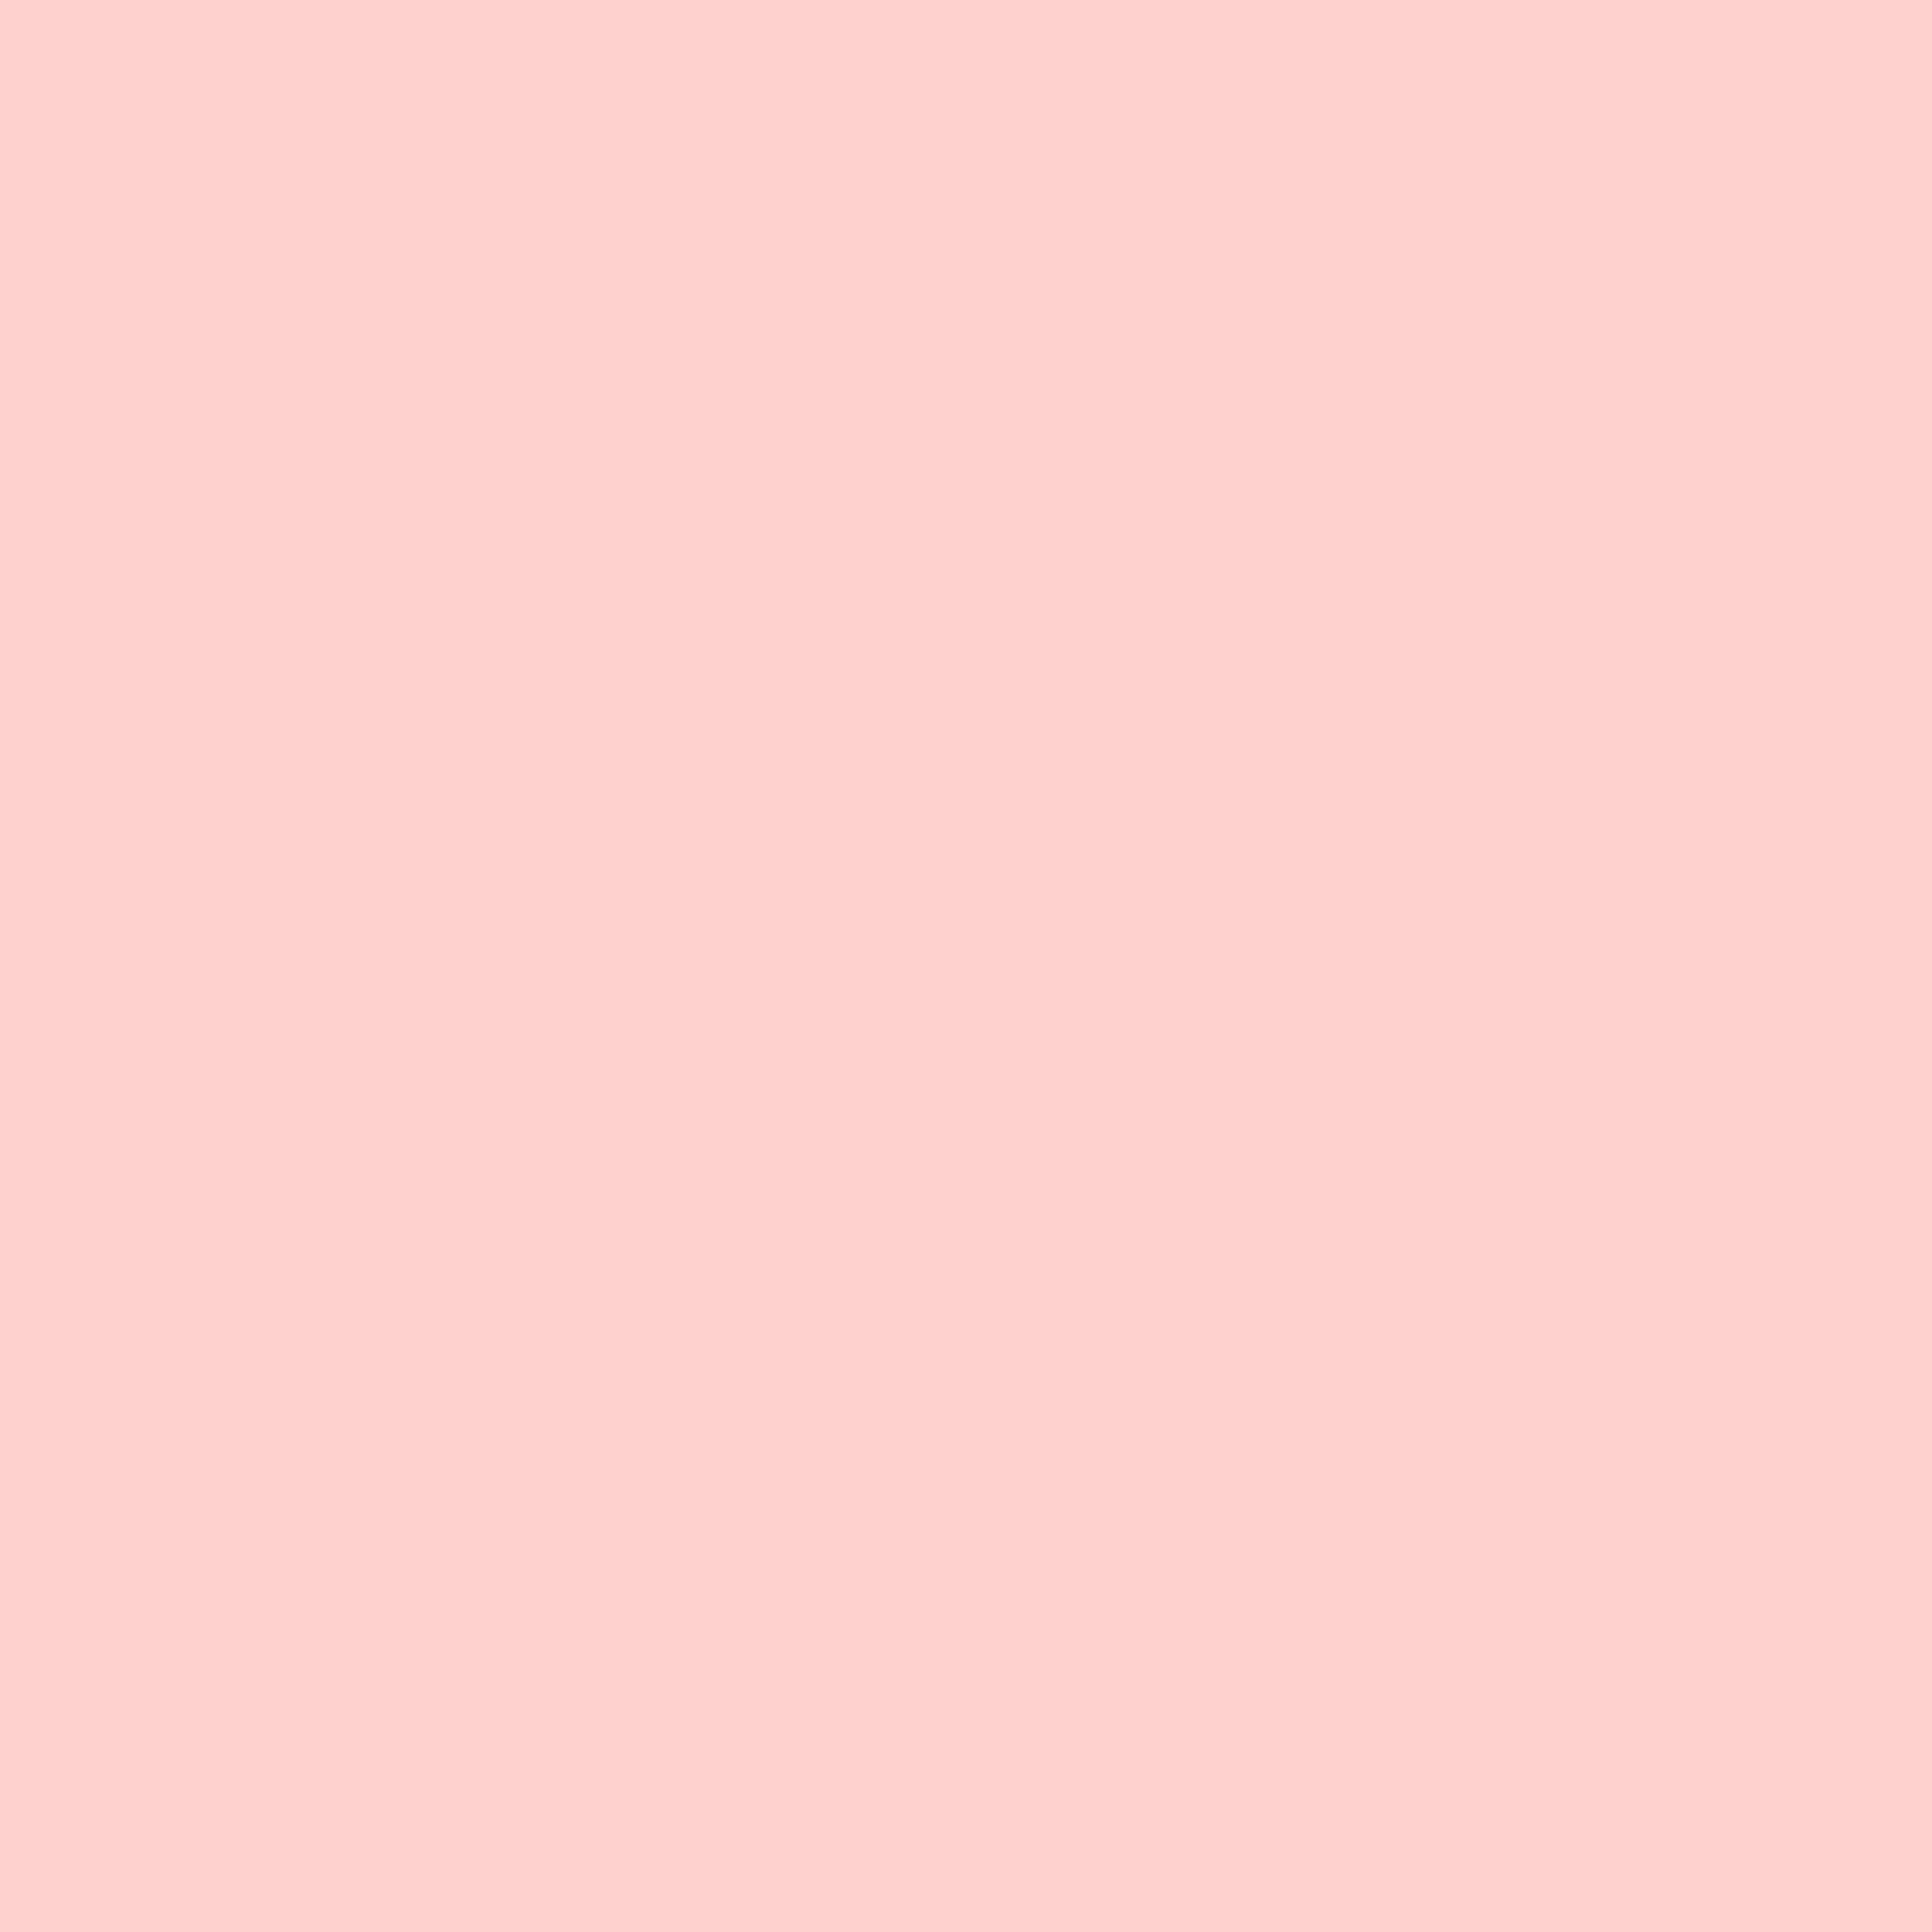 Download Light Pink Wallpapers Gallery